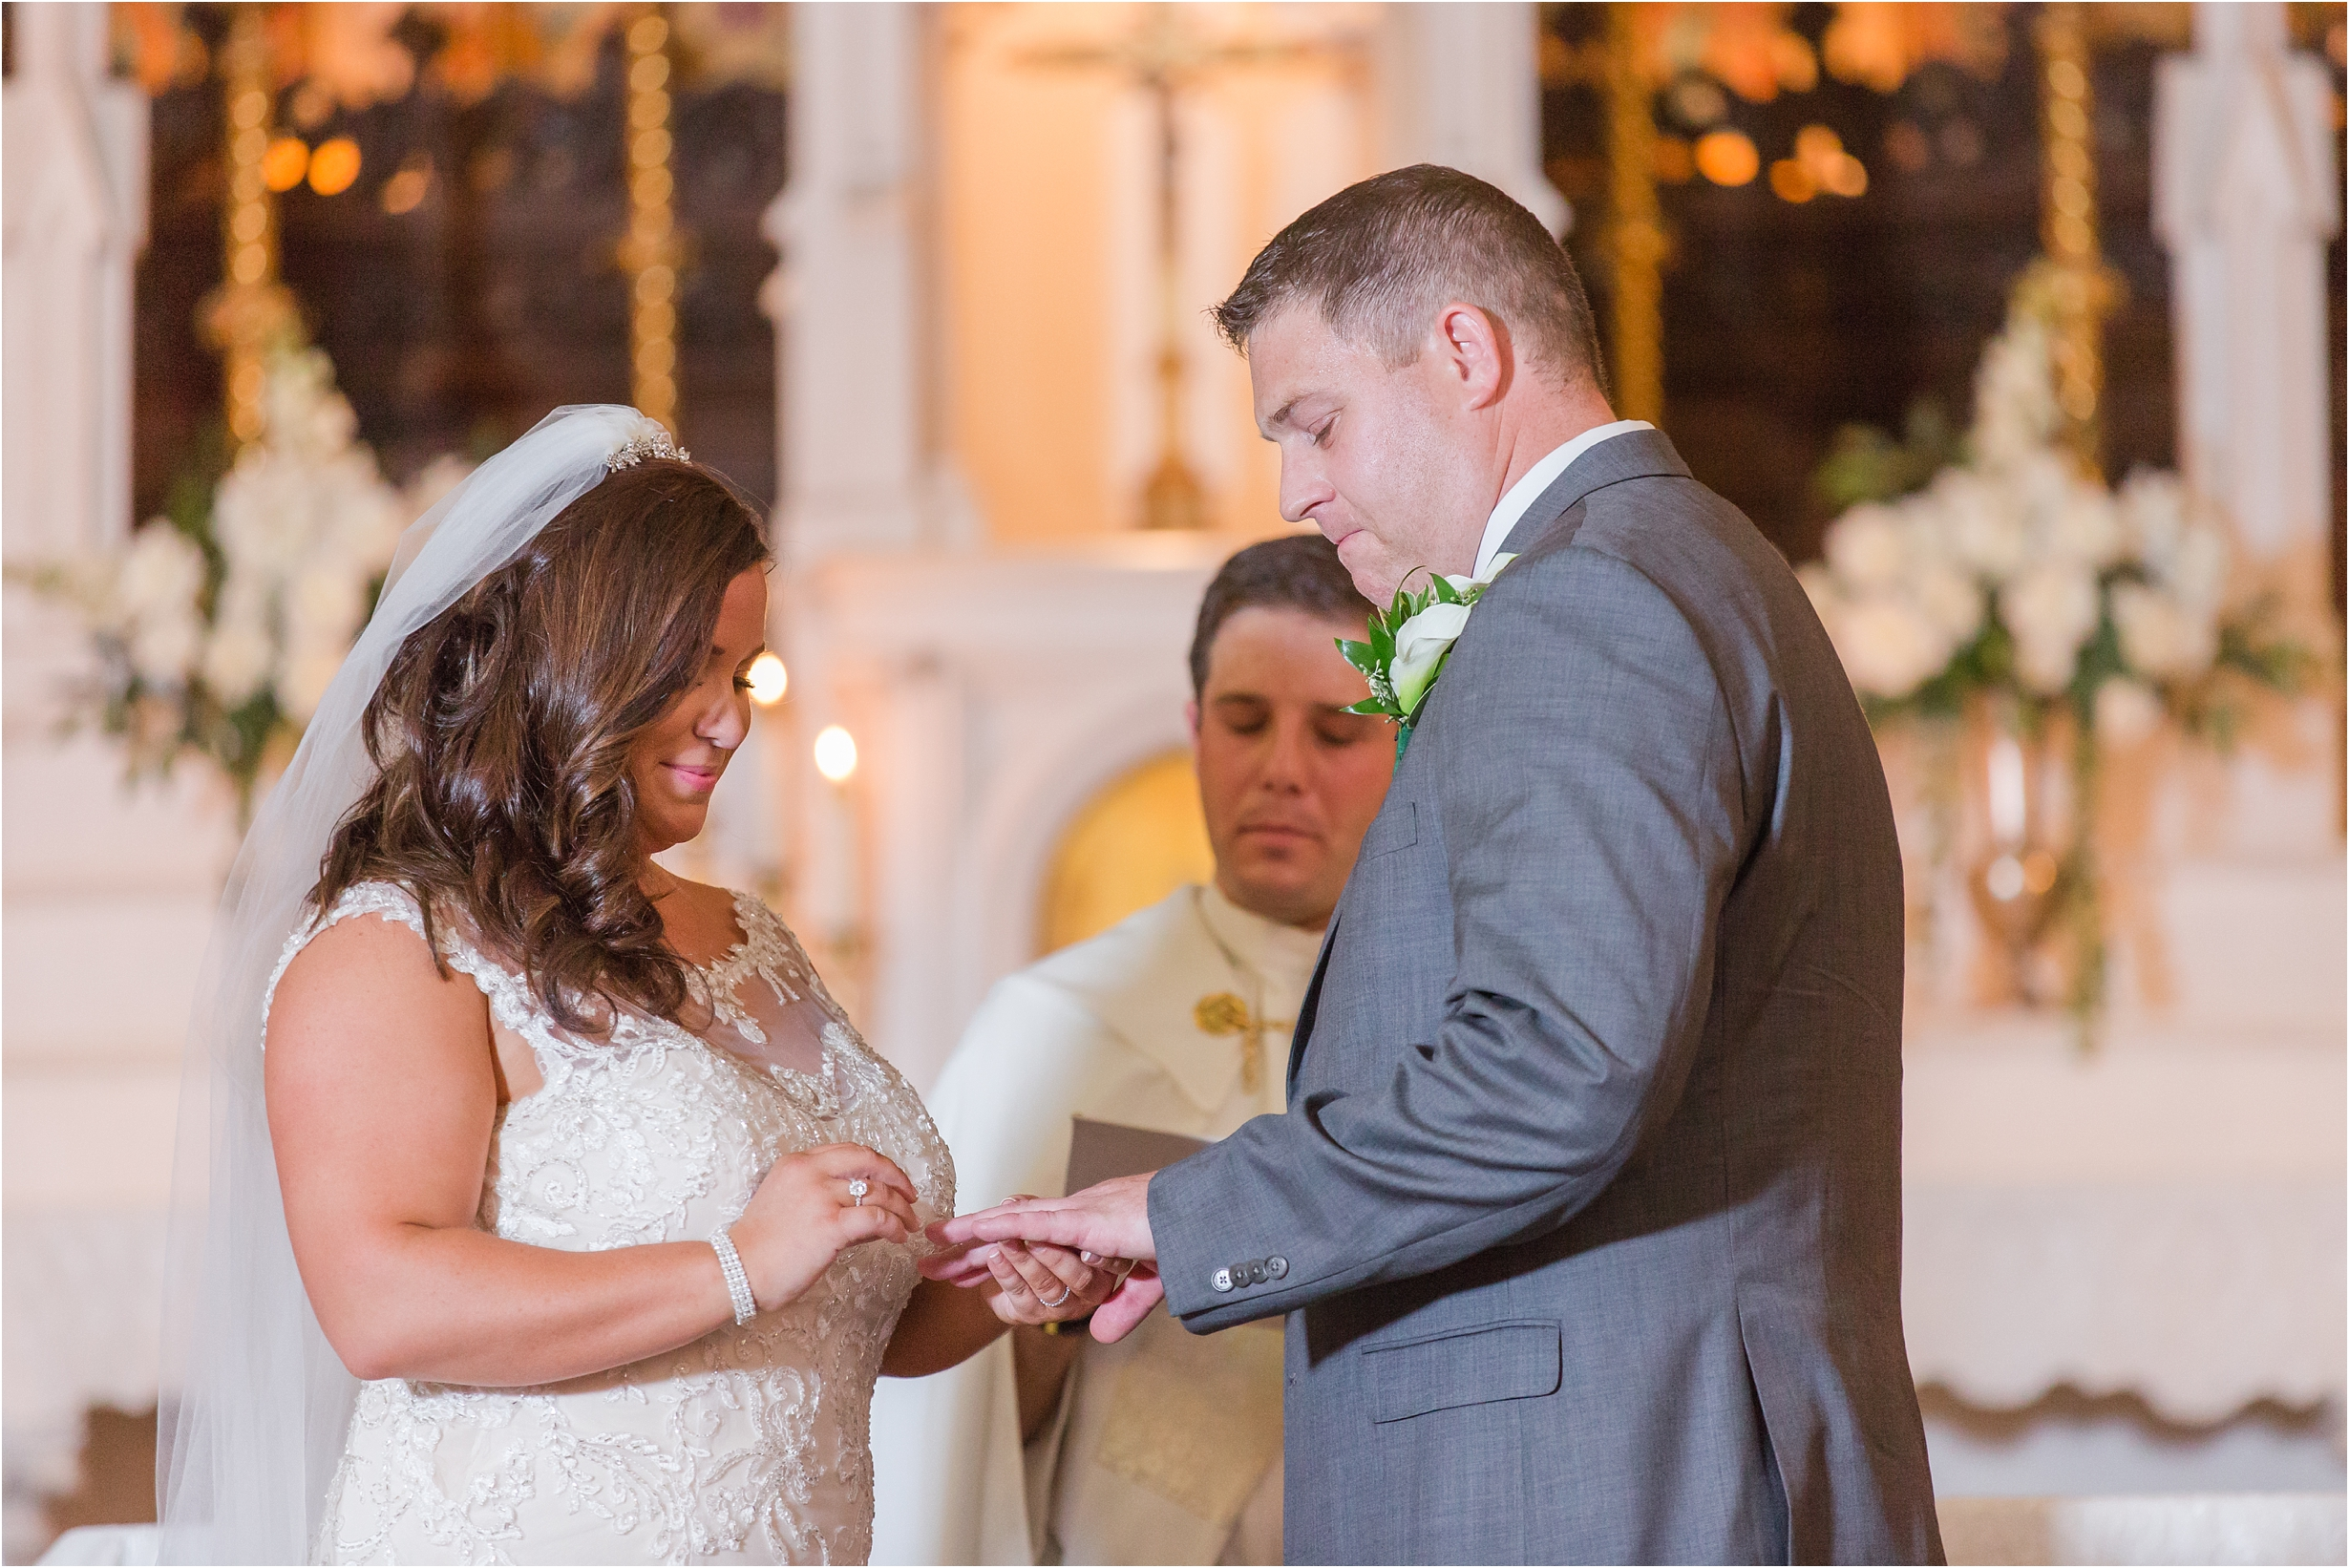 romantic-timeless-candid-wedding-photos-at-grosse-pointe-academy-in-grosse-pointe-mi-by-courtney-carolyn-photography_0004.jpg